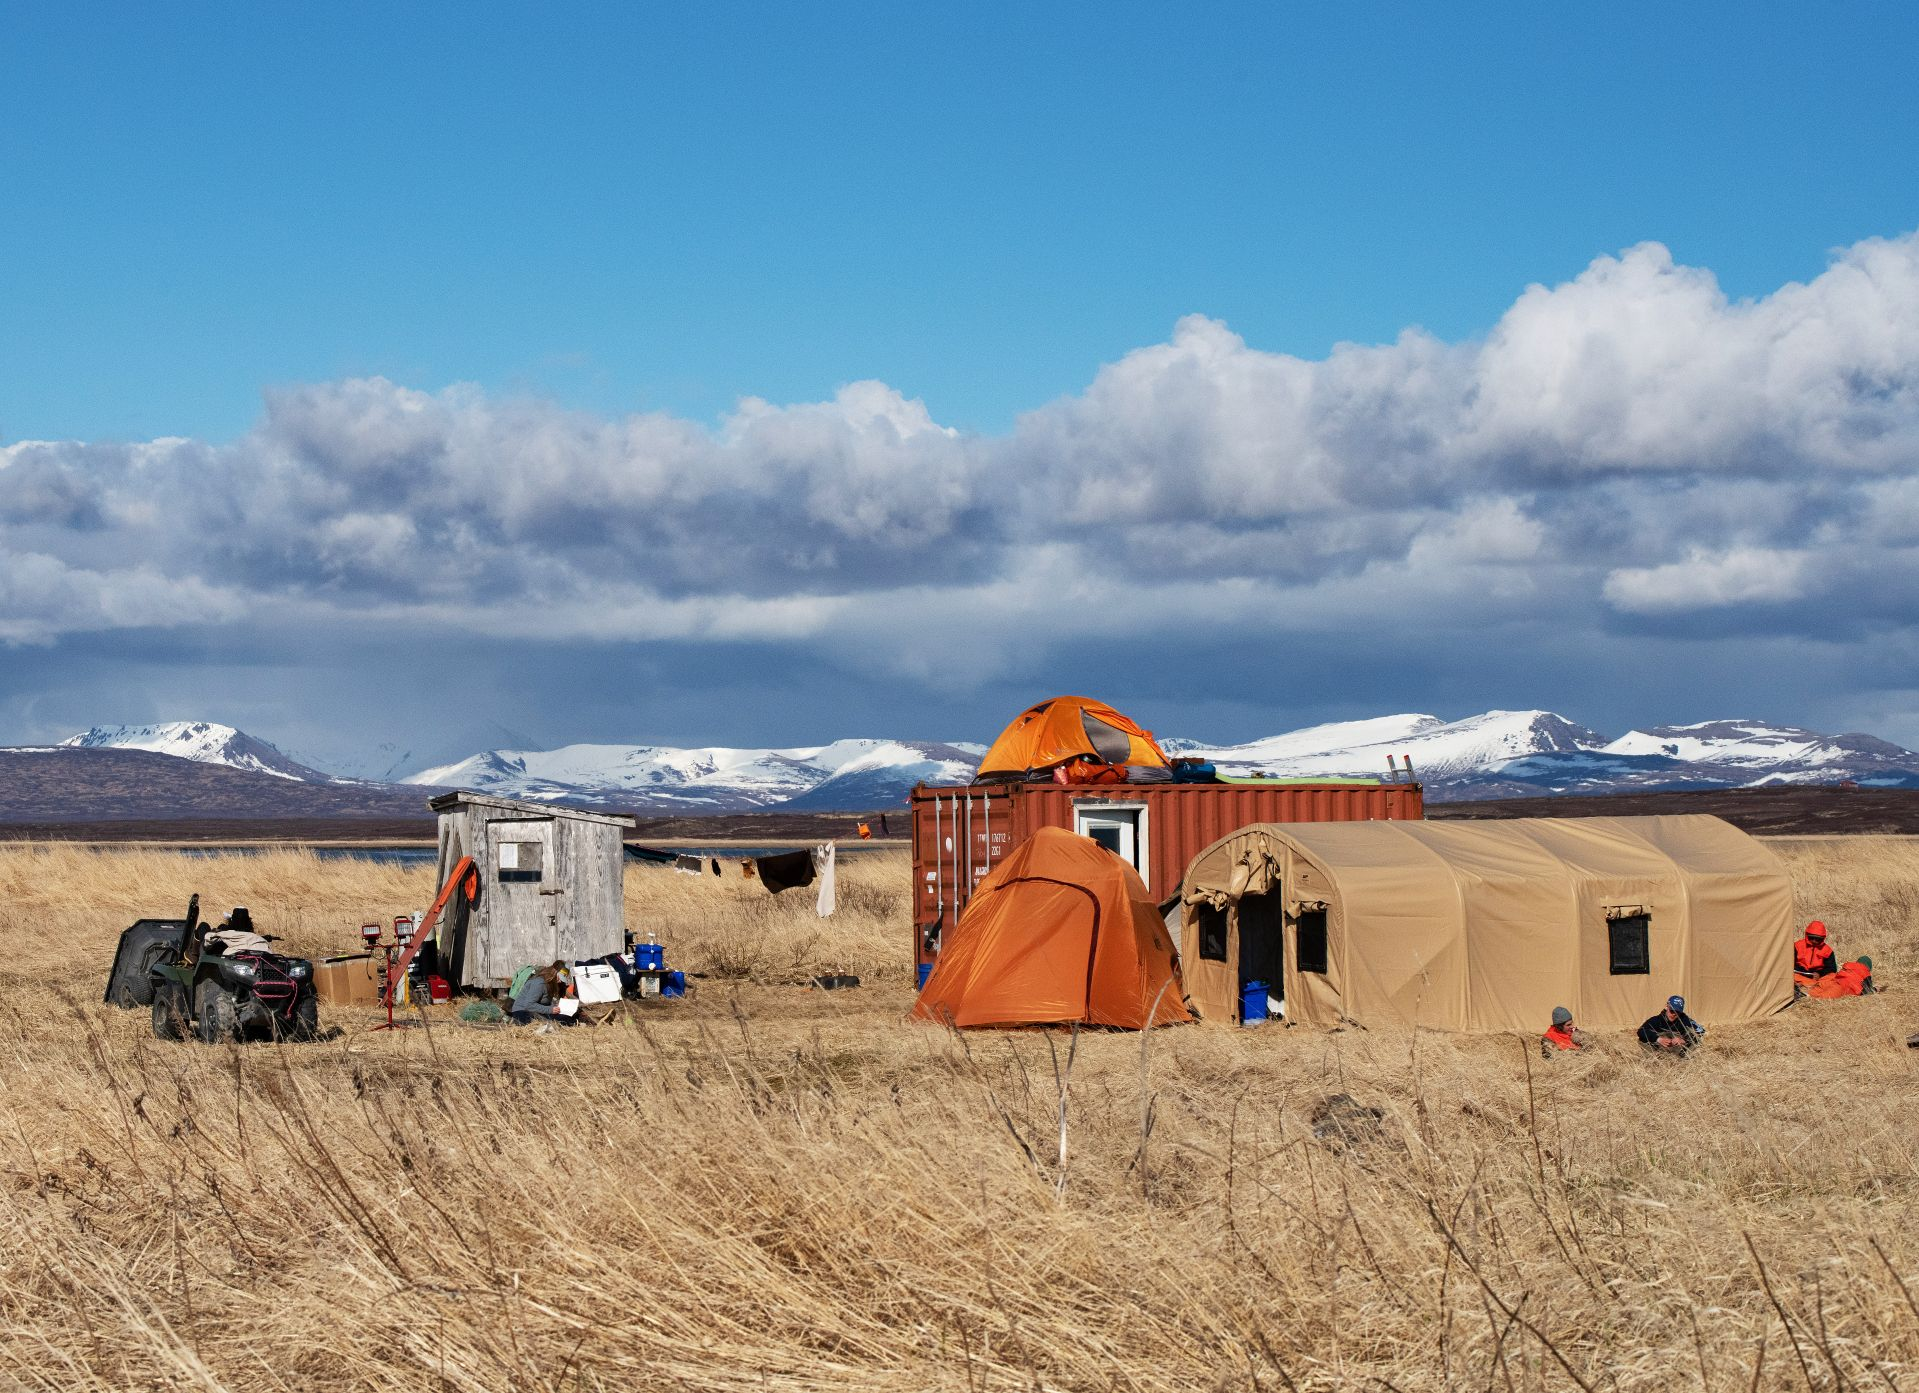 The campsite at the Old Togiak. From left, an ATV and cart; wooden shack used as the camp kitchen; the 10-by-20 shipping container fitted with six bunks; Barnett's tent atop the container; and another tent and WeatherPort nearby. (Tim Leach '99 for Bates College)